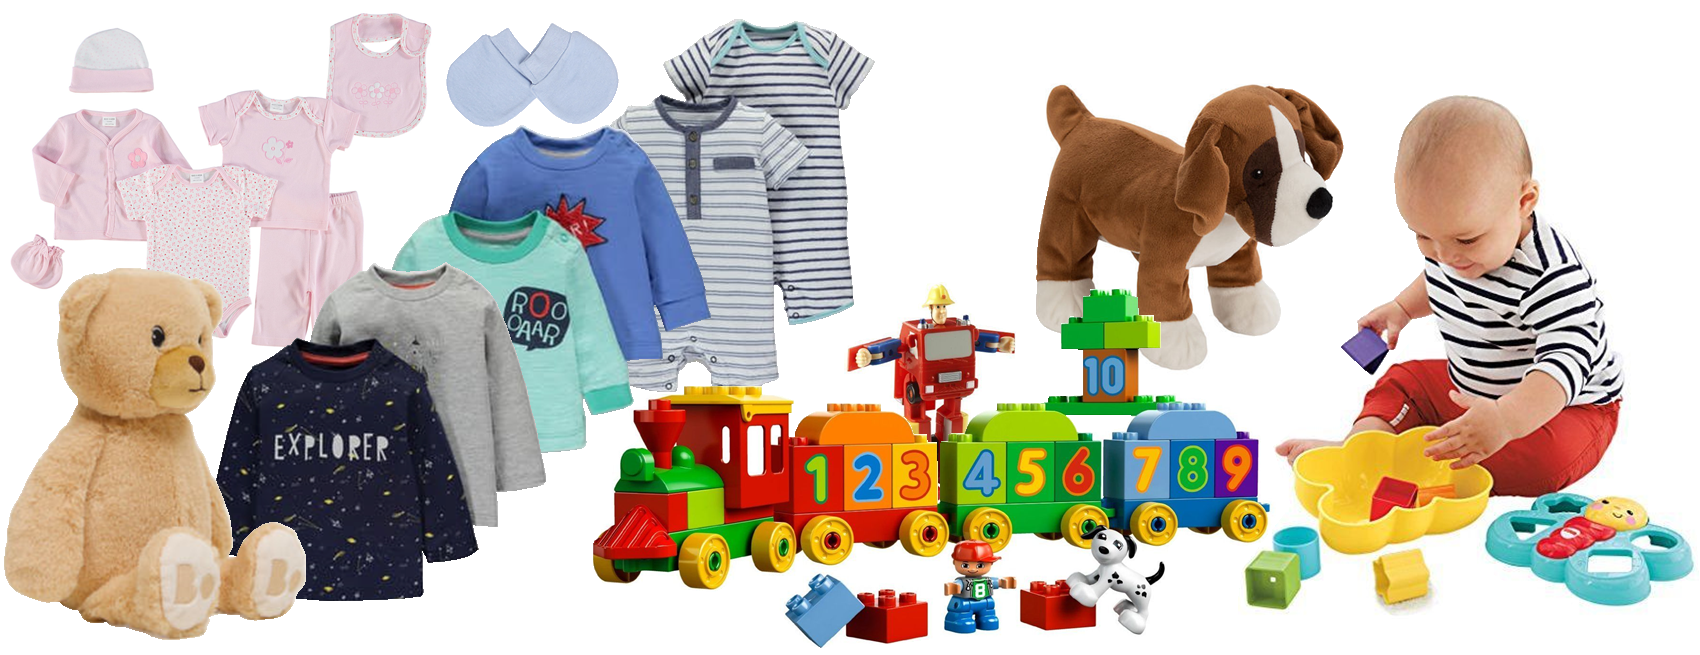 Online Auctions for Baby & Toddler from Deal Locators